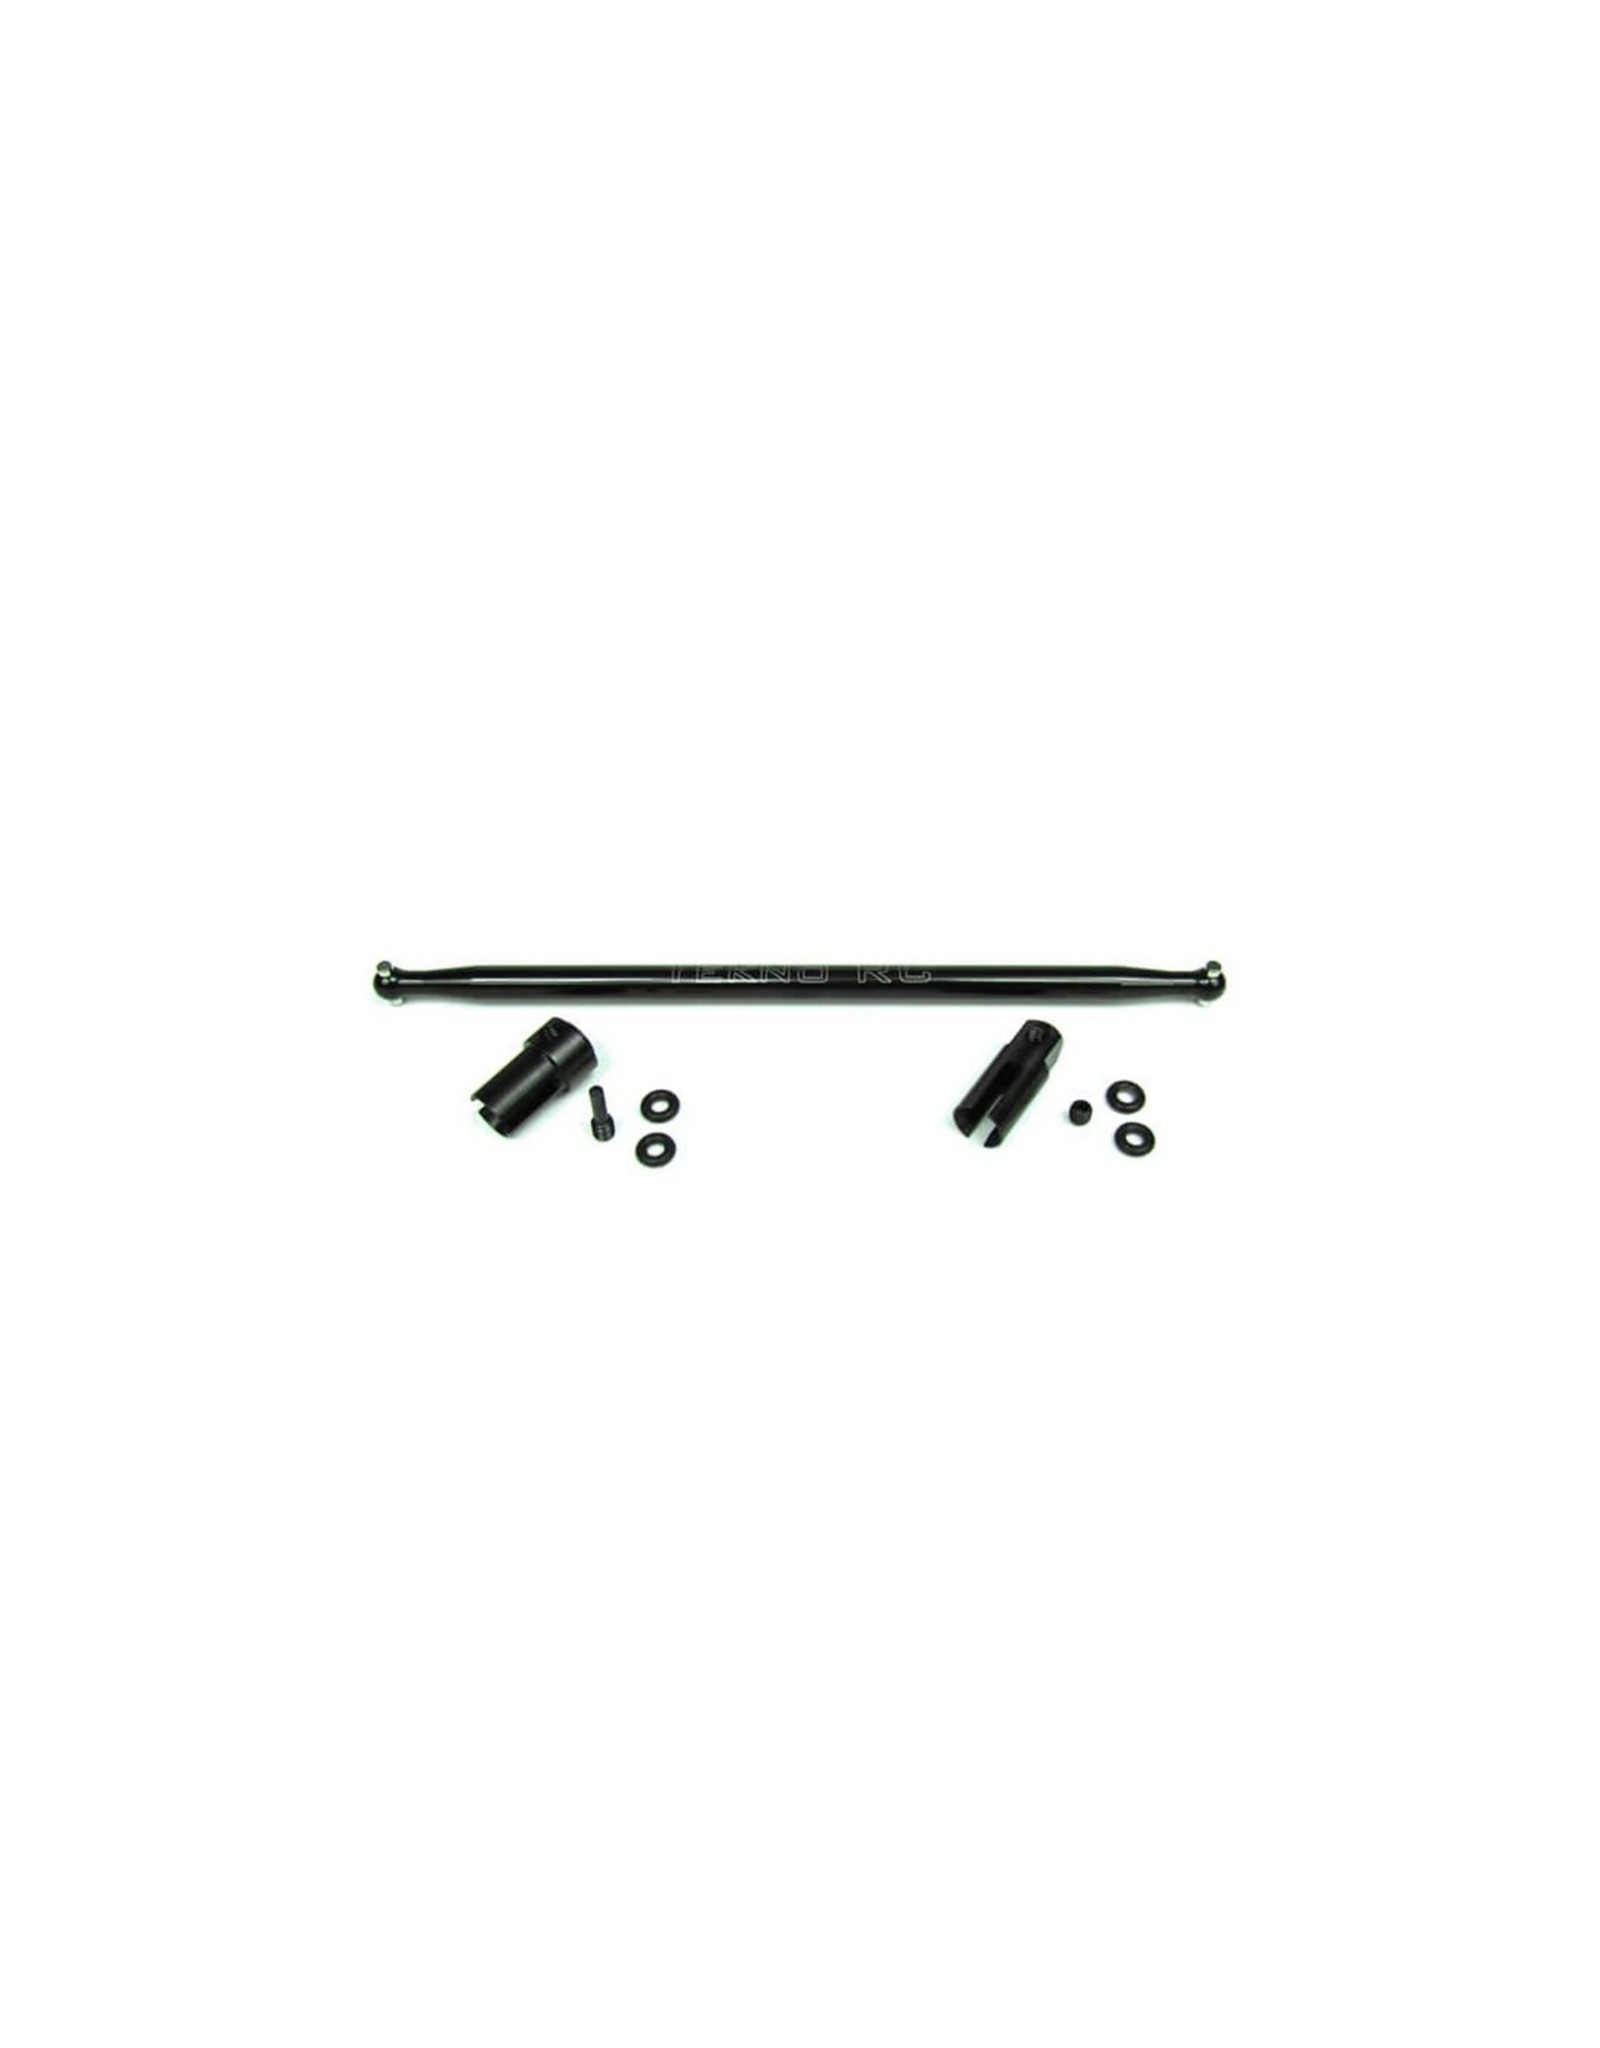 Tekno Big Bone Center Driveshaft and Outdrives: Stampede 4X4  (TKR6755)